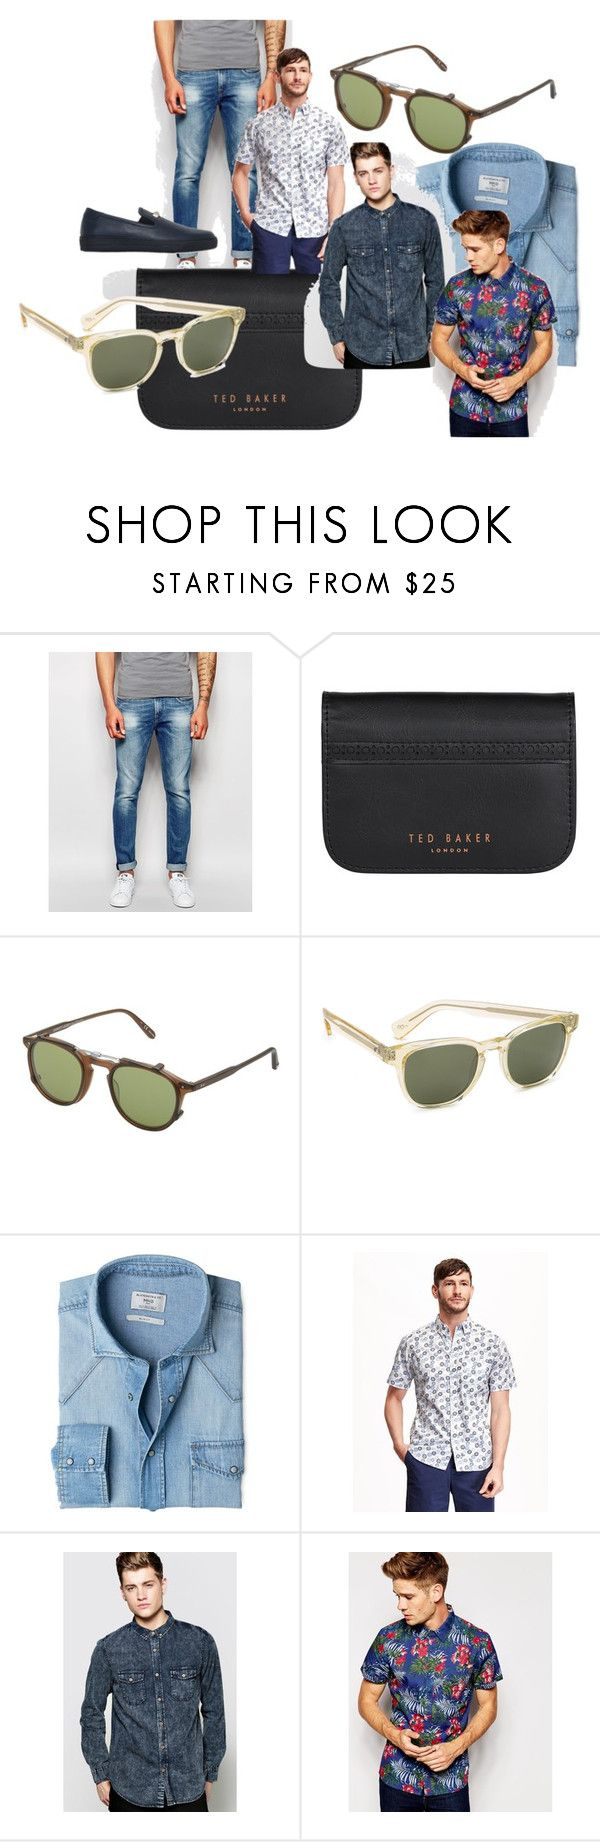 """Untitled #2"" by rismasansella on Polyvore featuring Scotch & Soda, Wild & Wolf, Garrett Leight, Paul Smith, MANGO, Old Navy, BoohooMAN, ESPRIT, Bi_Plus and mens"